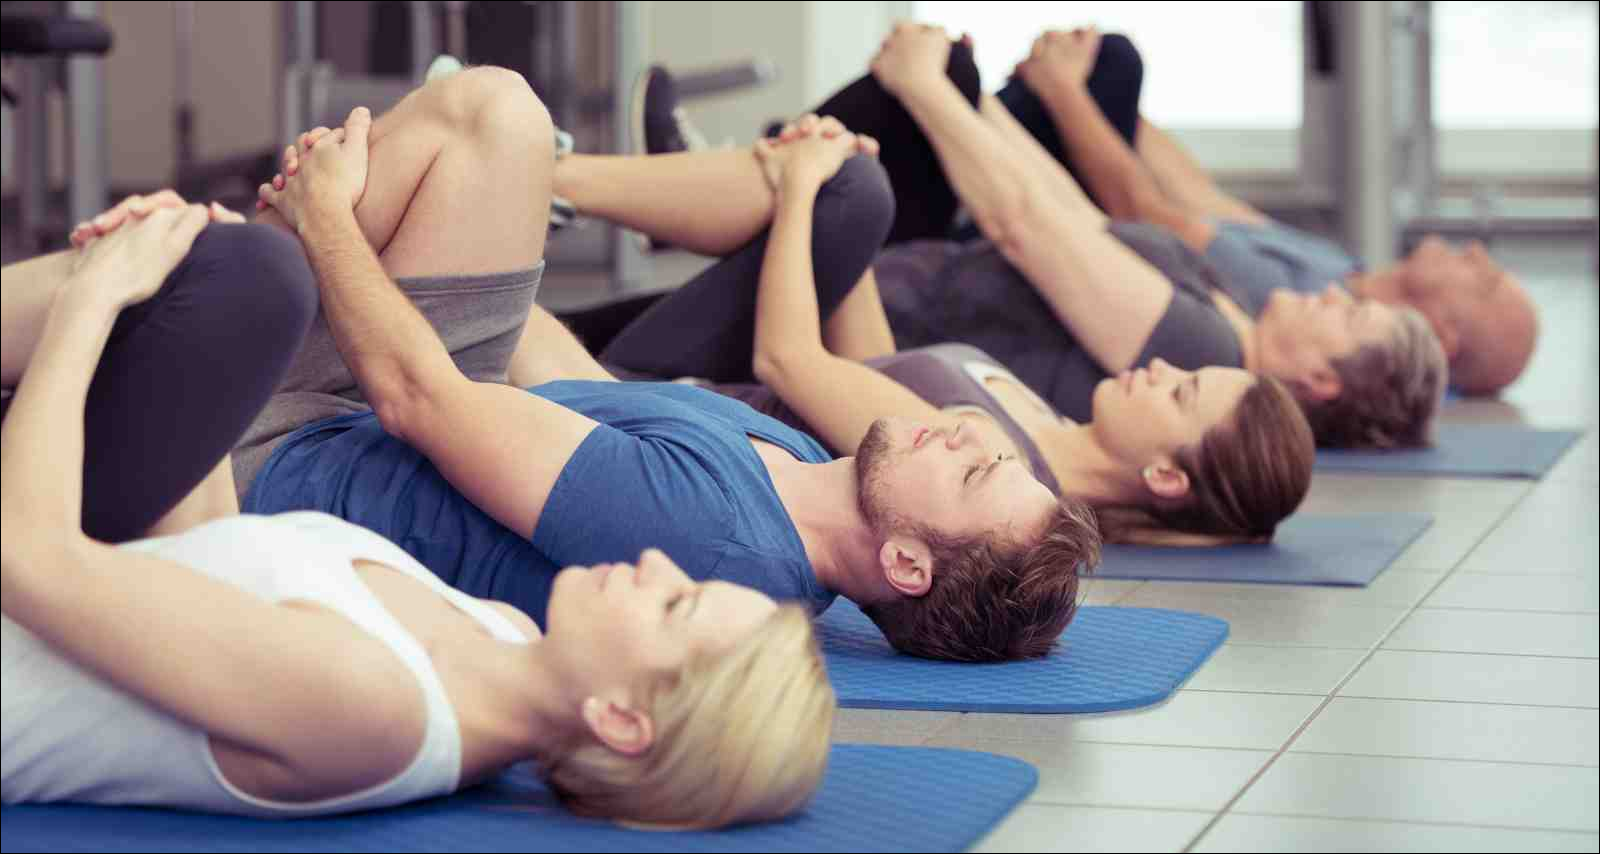 group of people in a gym class lying in a receding row on mats doing leg flexes